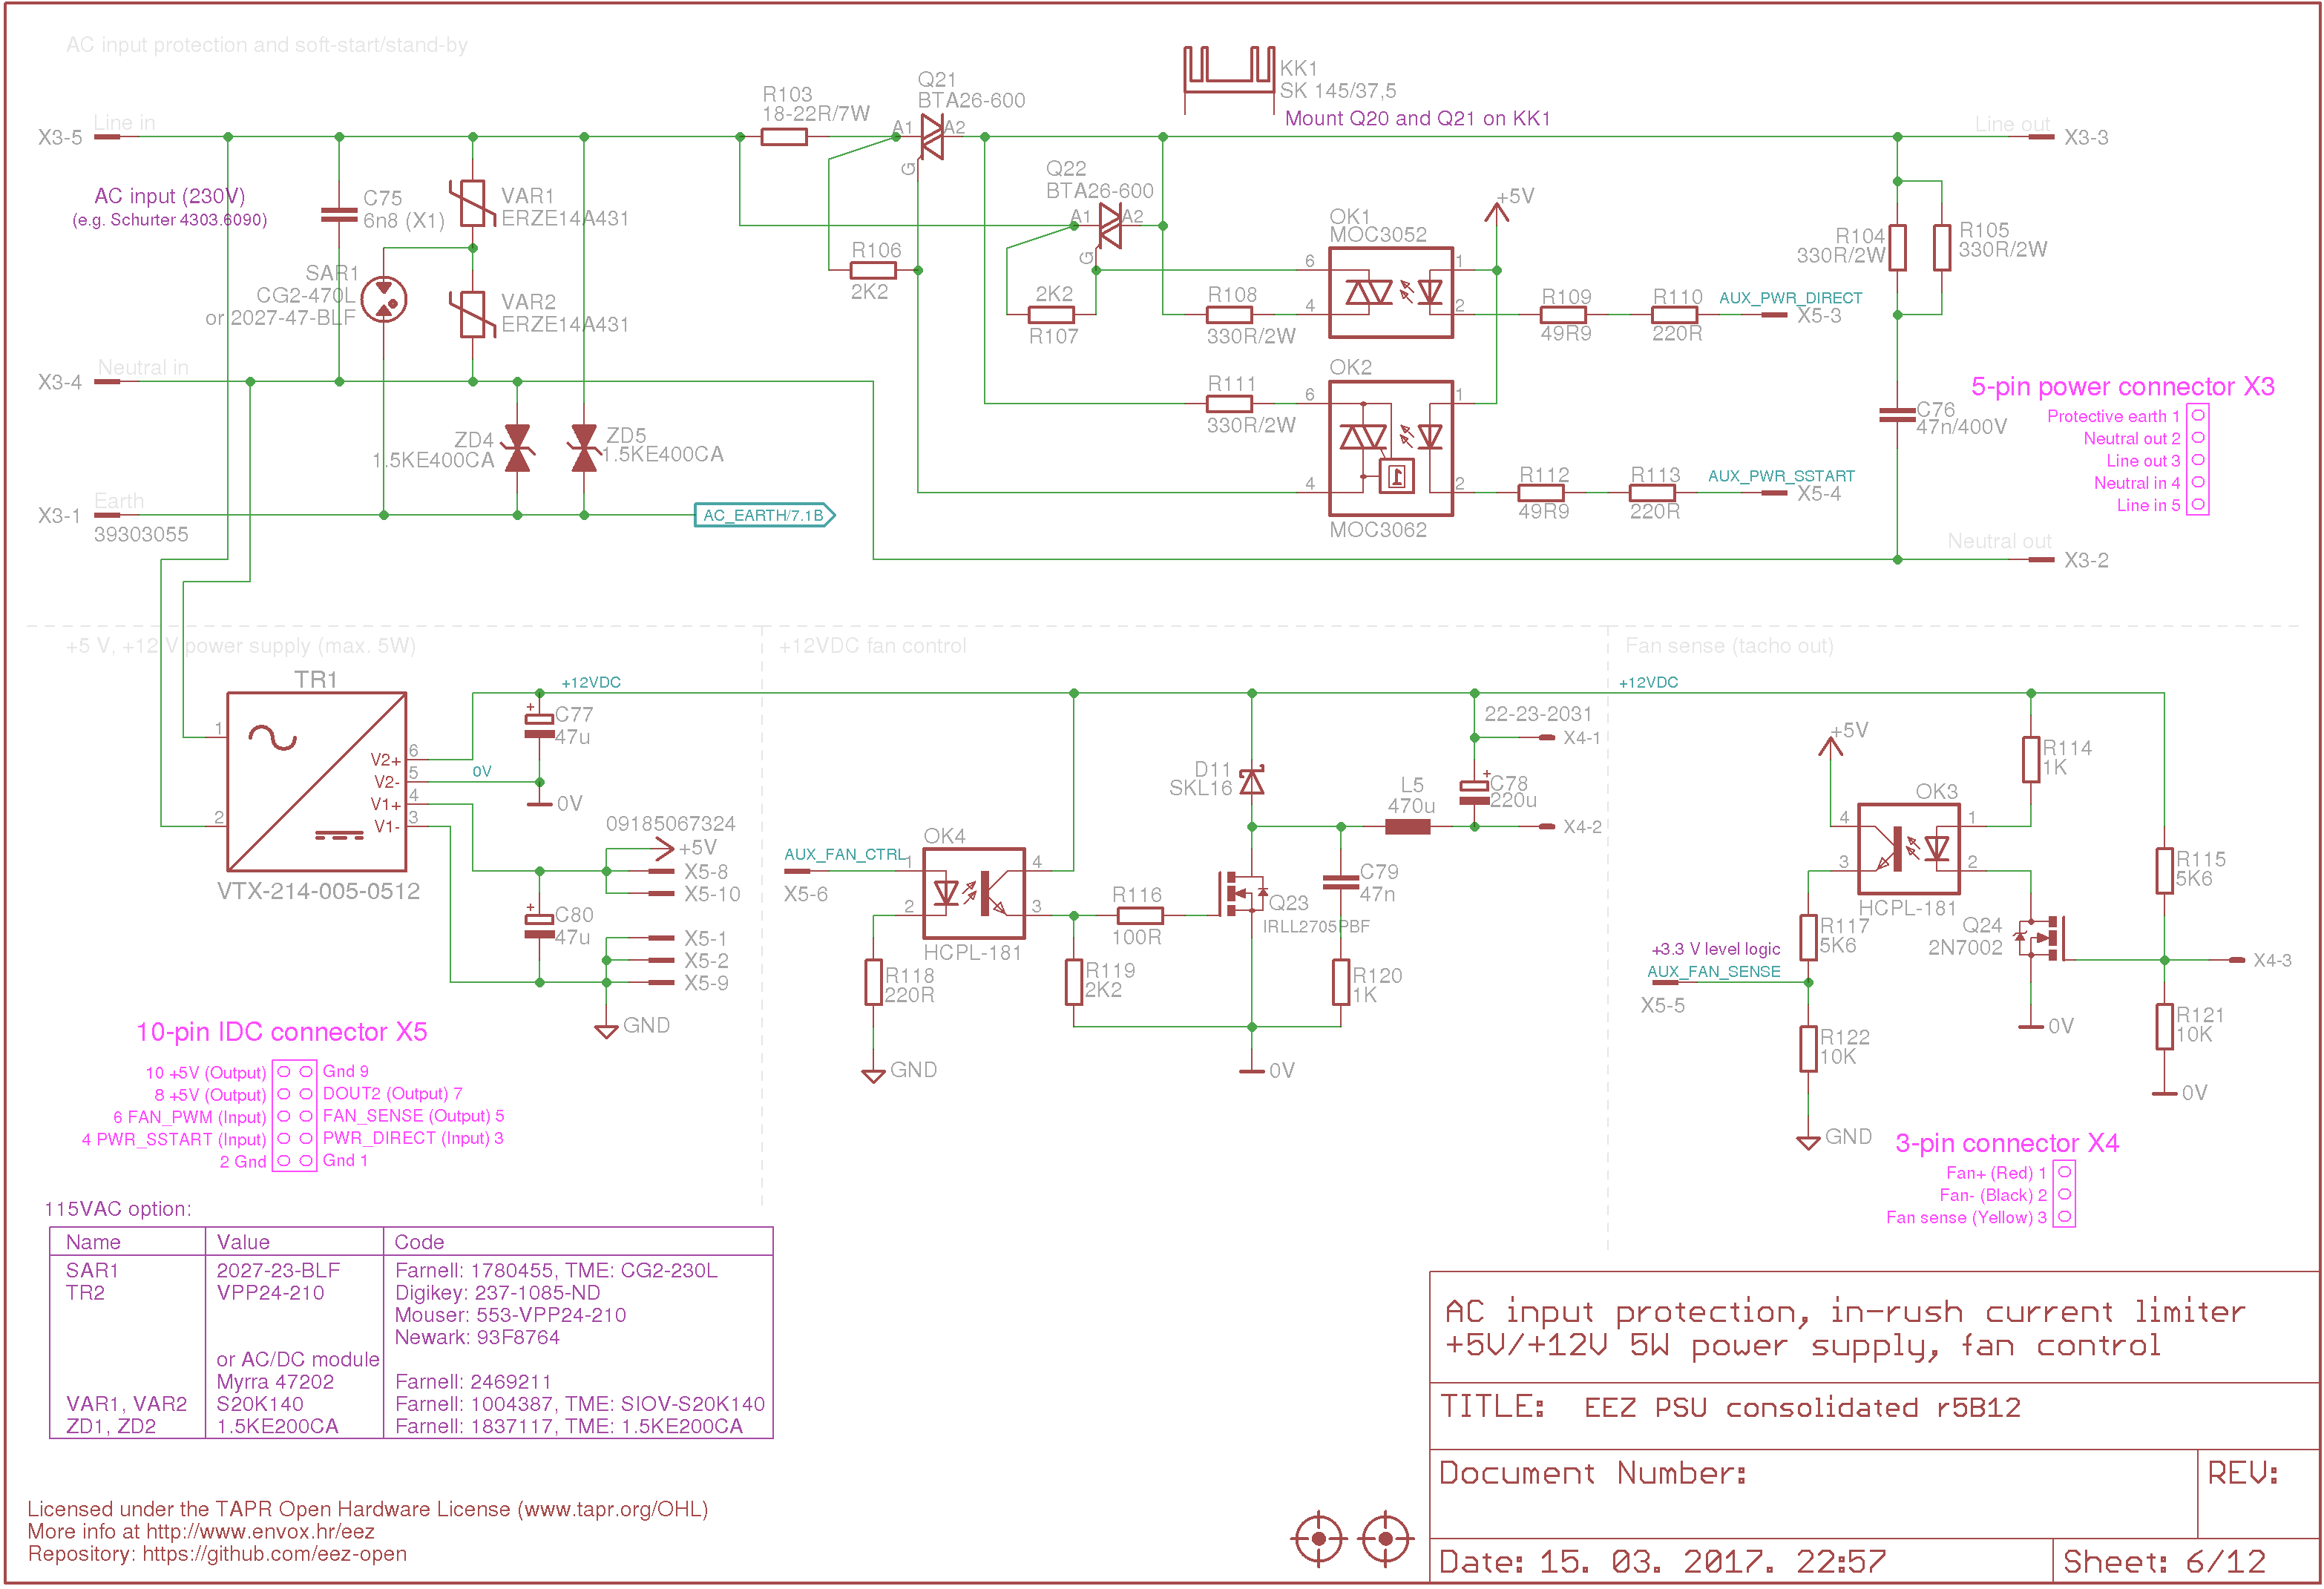 aux_ps_r5b12_sheet6of12.png